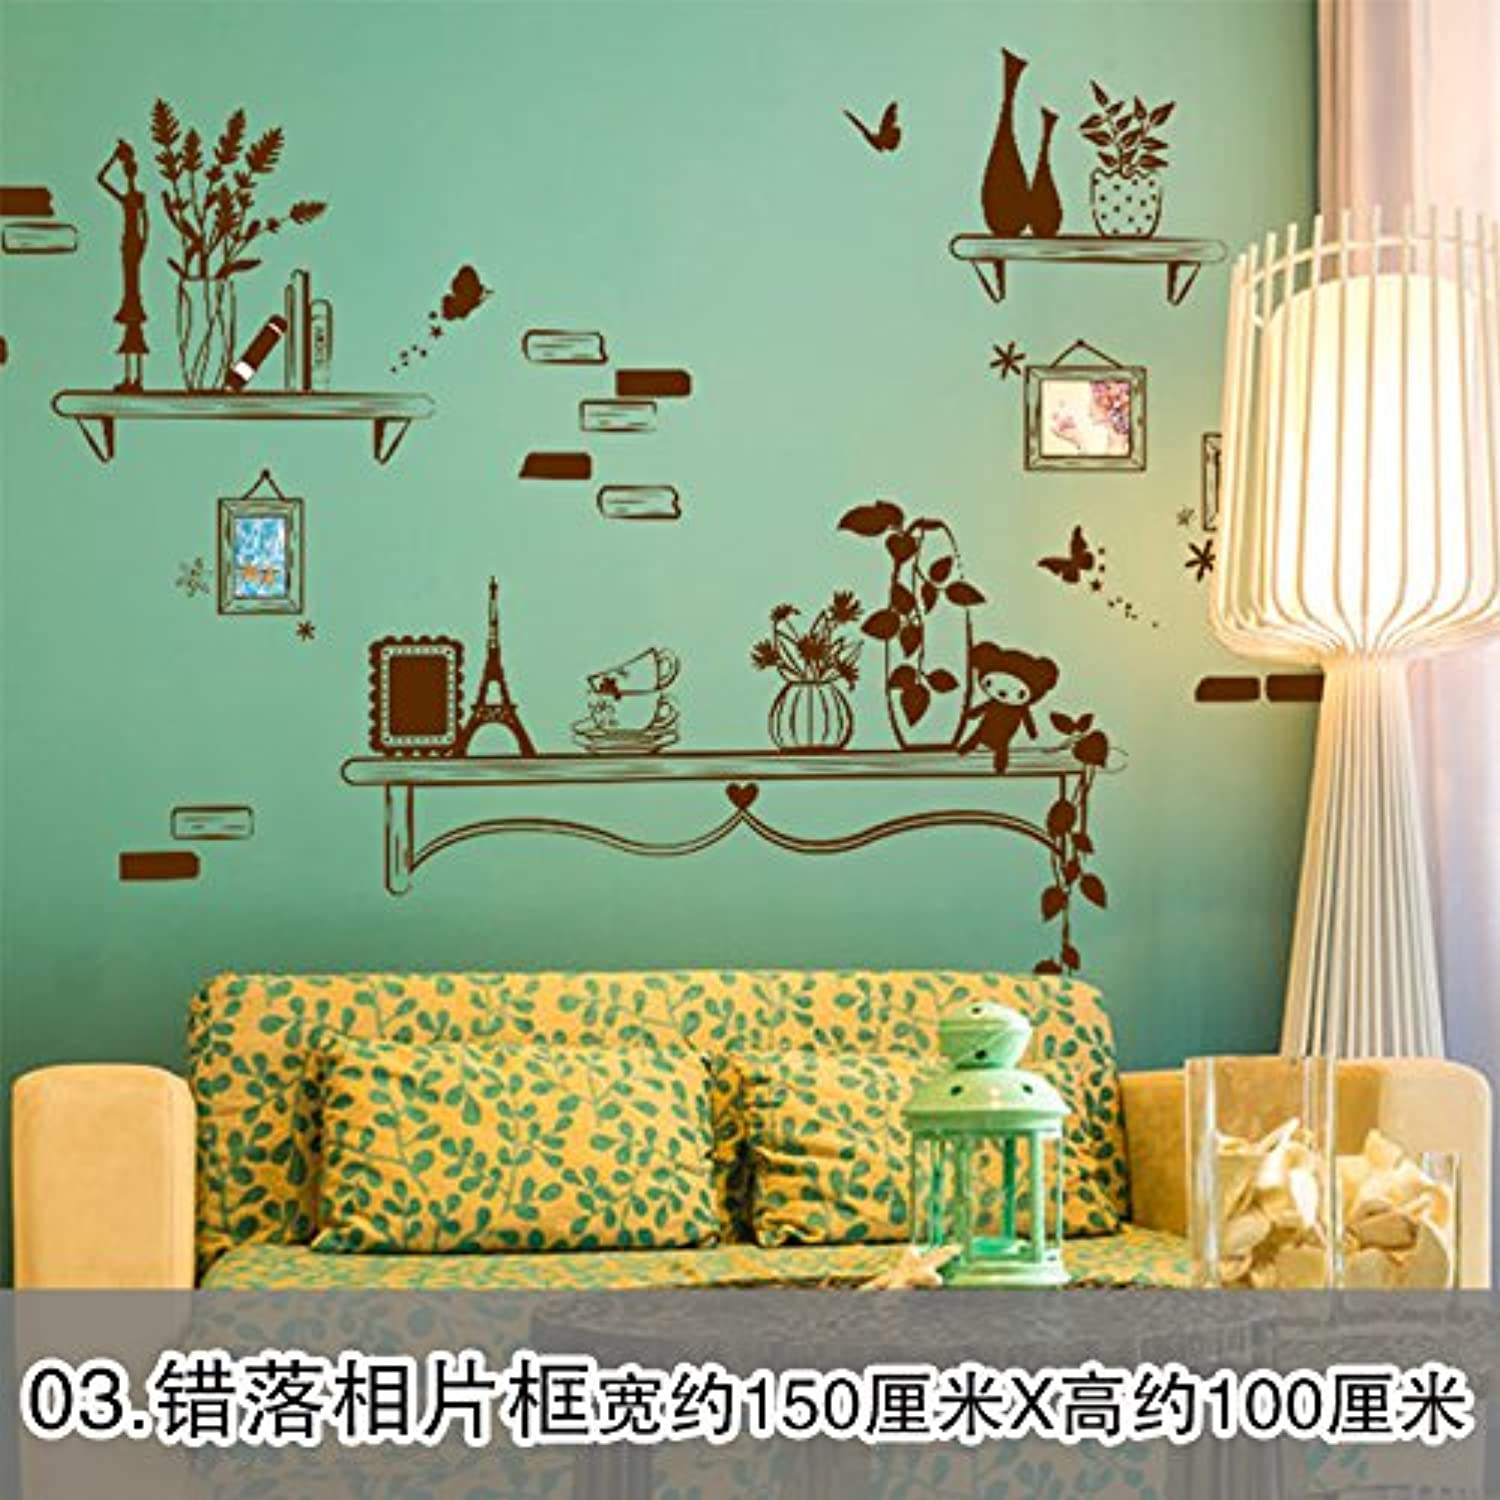 Znzbzt 3D Wall Decals Wallpaper self Adhesive Room Wall Posters Posters, Photo Frame